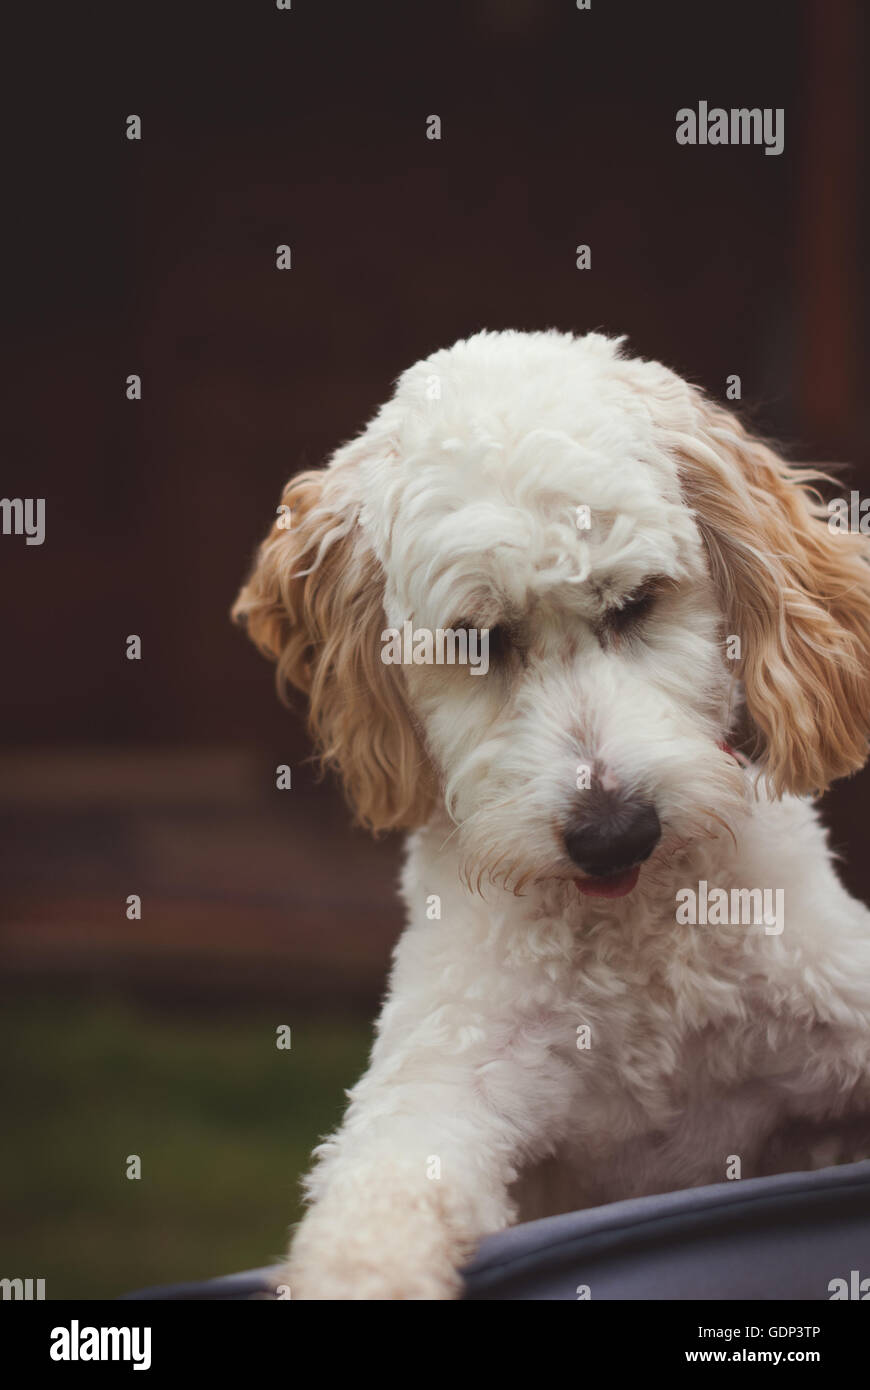 Cockerpoo puppy dog with cream coloured coat and brown ears - Stock Image